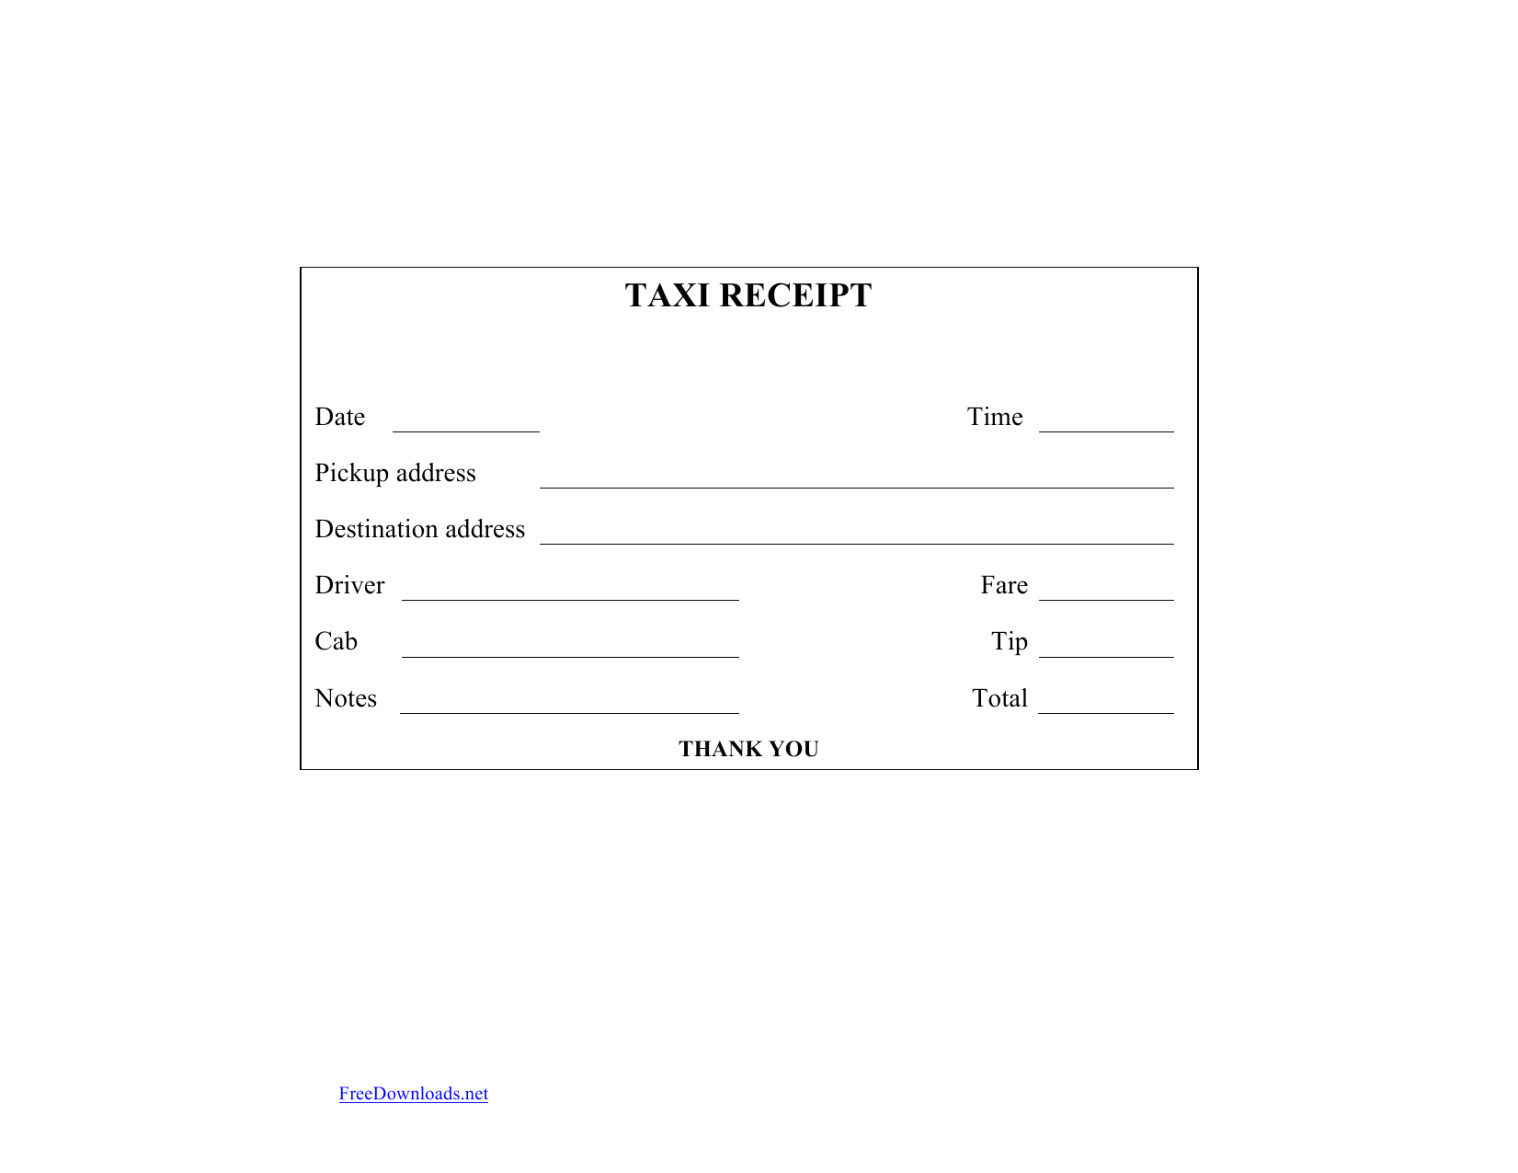 Download Blank Printable Taxi Cab Receipt Template Excel For Blank Taxi Receipt Template